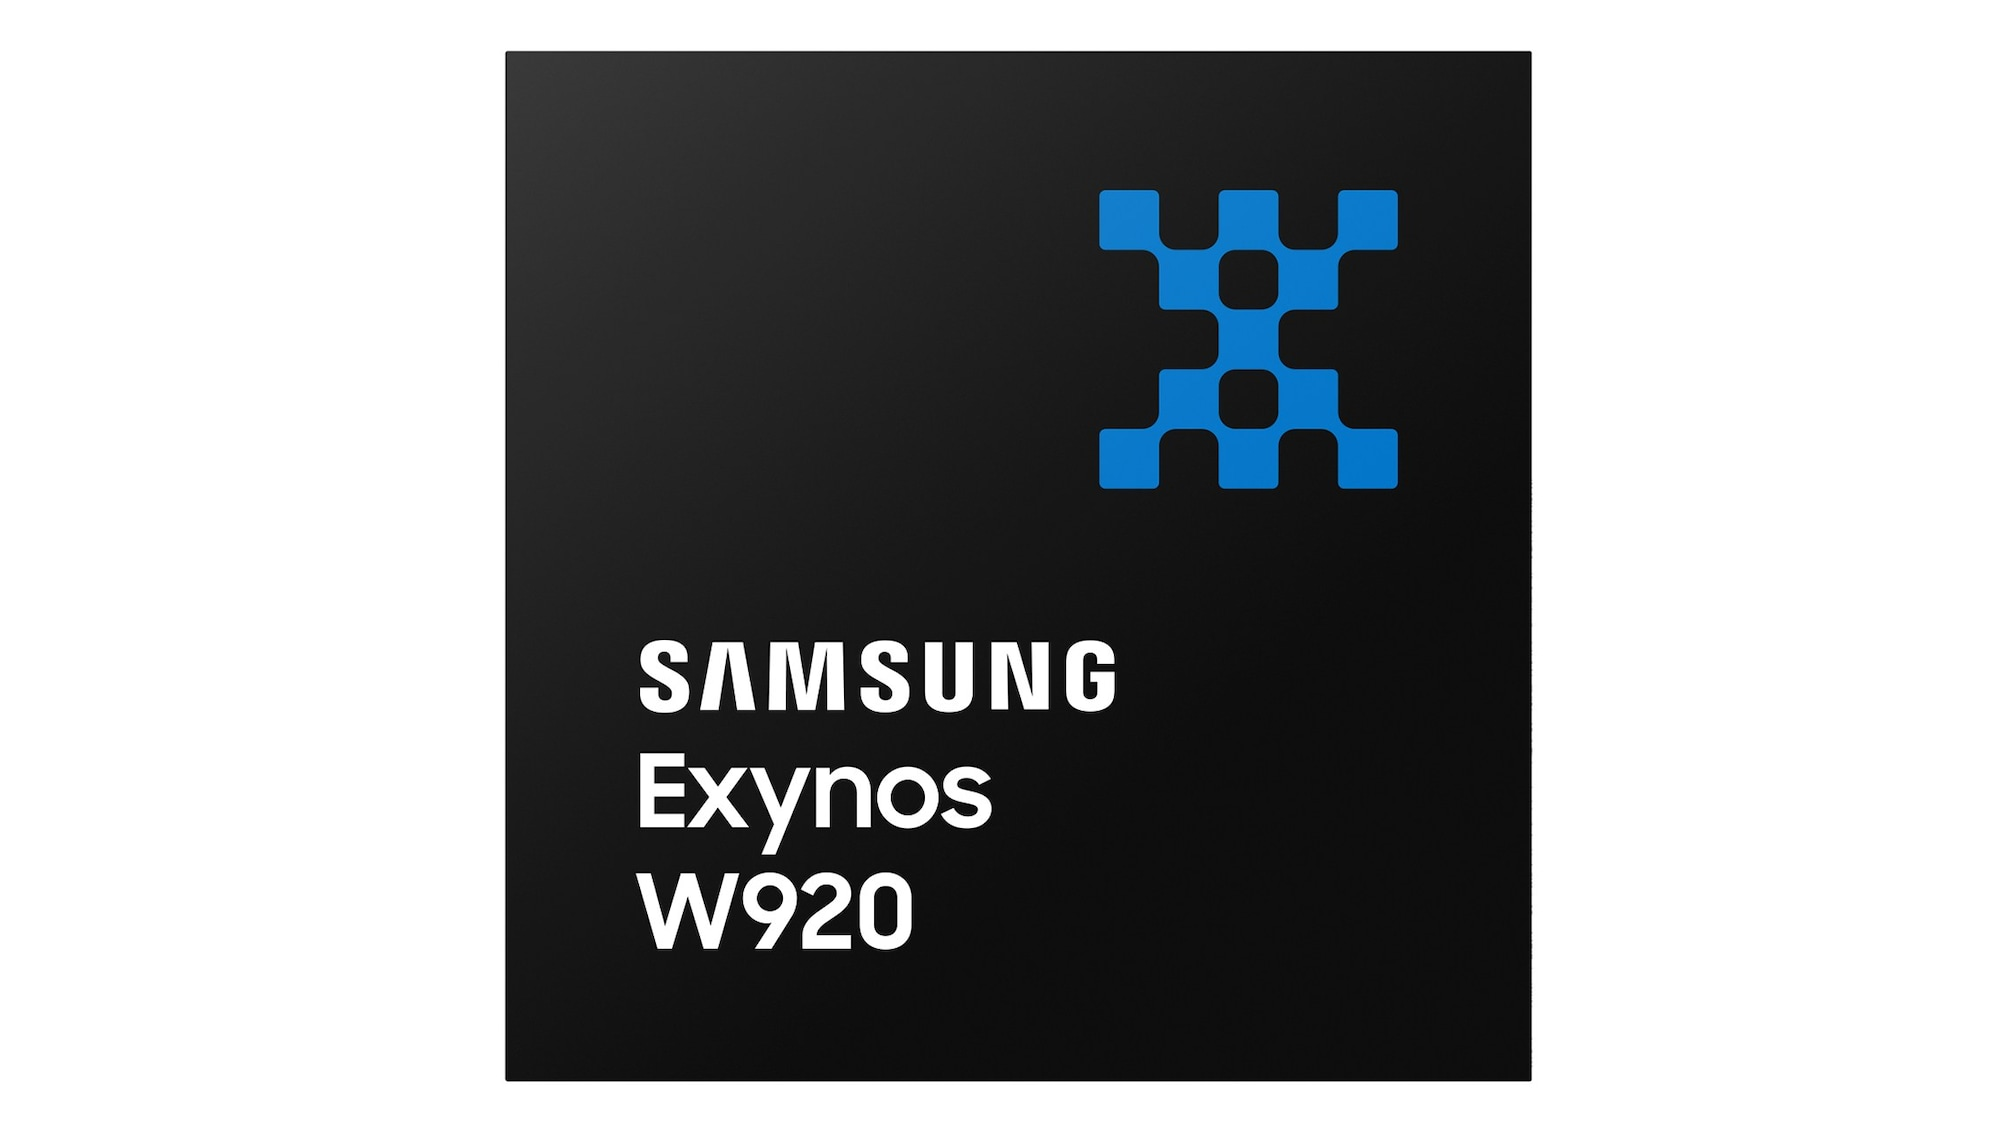 Samsung Introduces First 5nm Chip for Wearable Devices to Enhance Upcoming Galaxy Watch 4 Series - Technology News, Firstpost